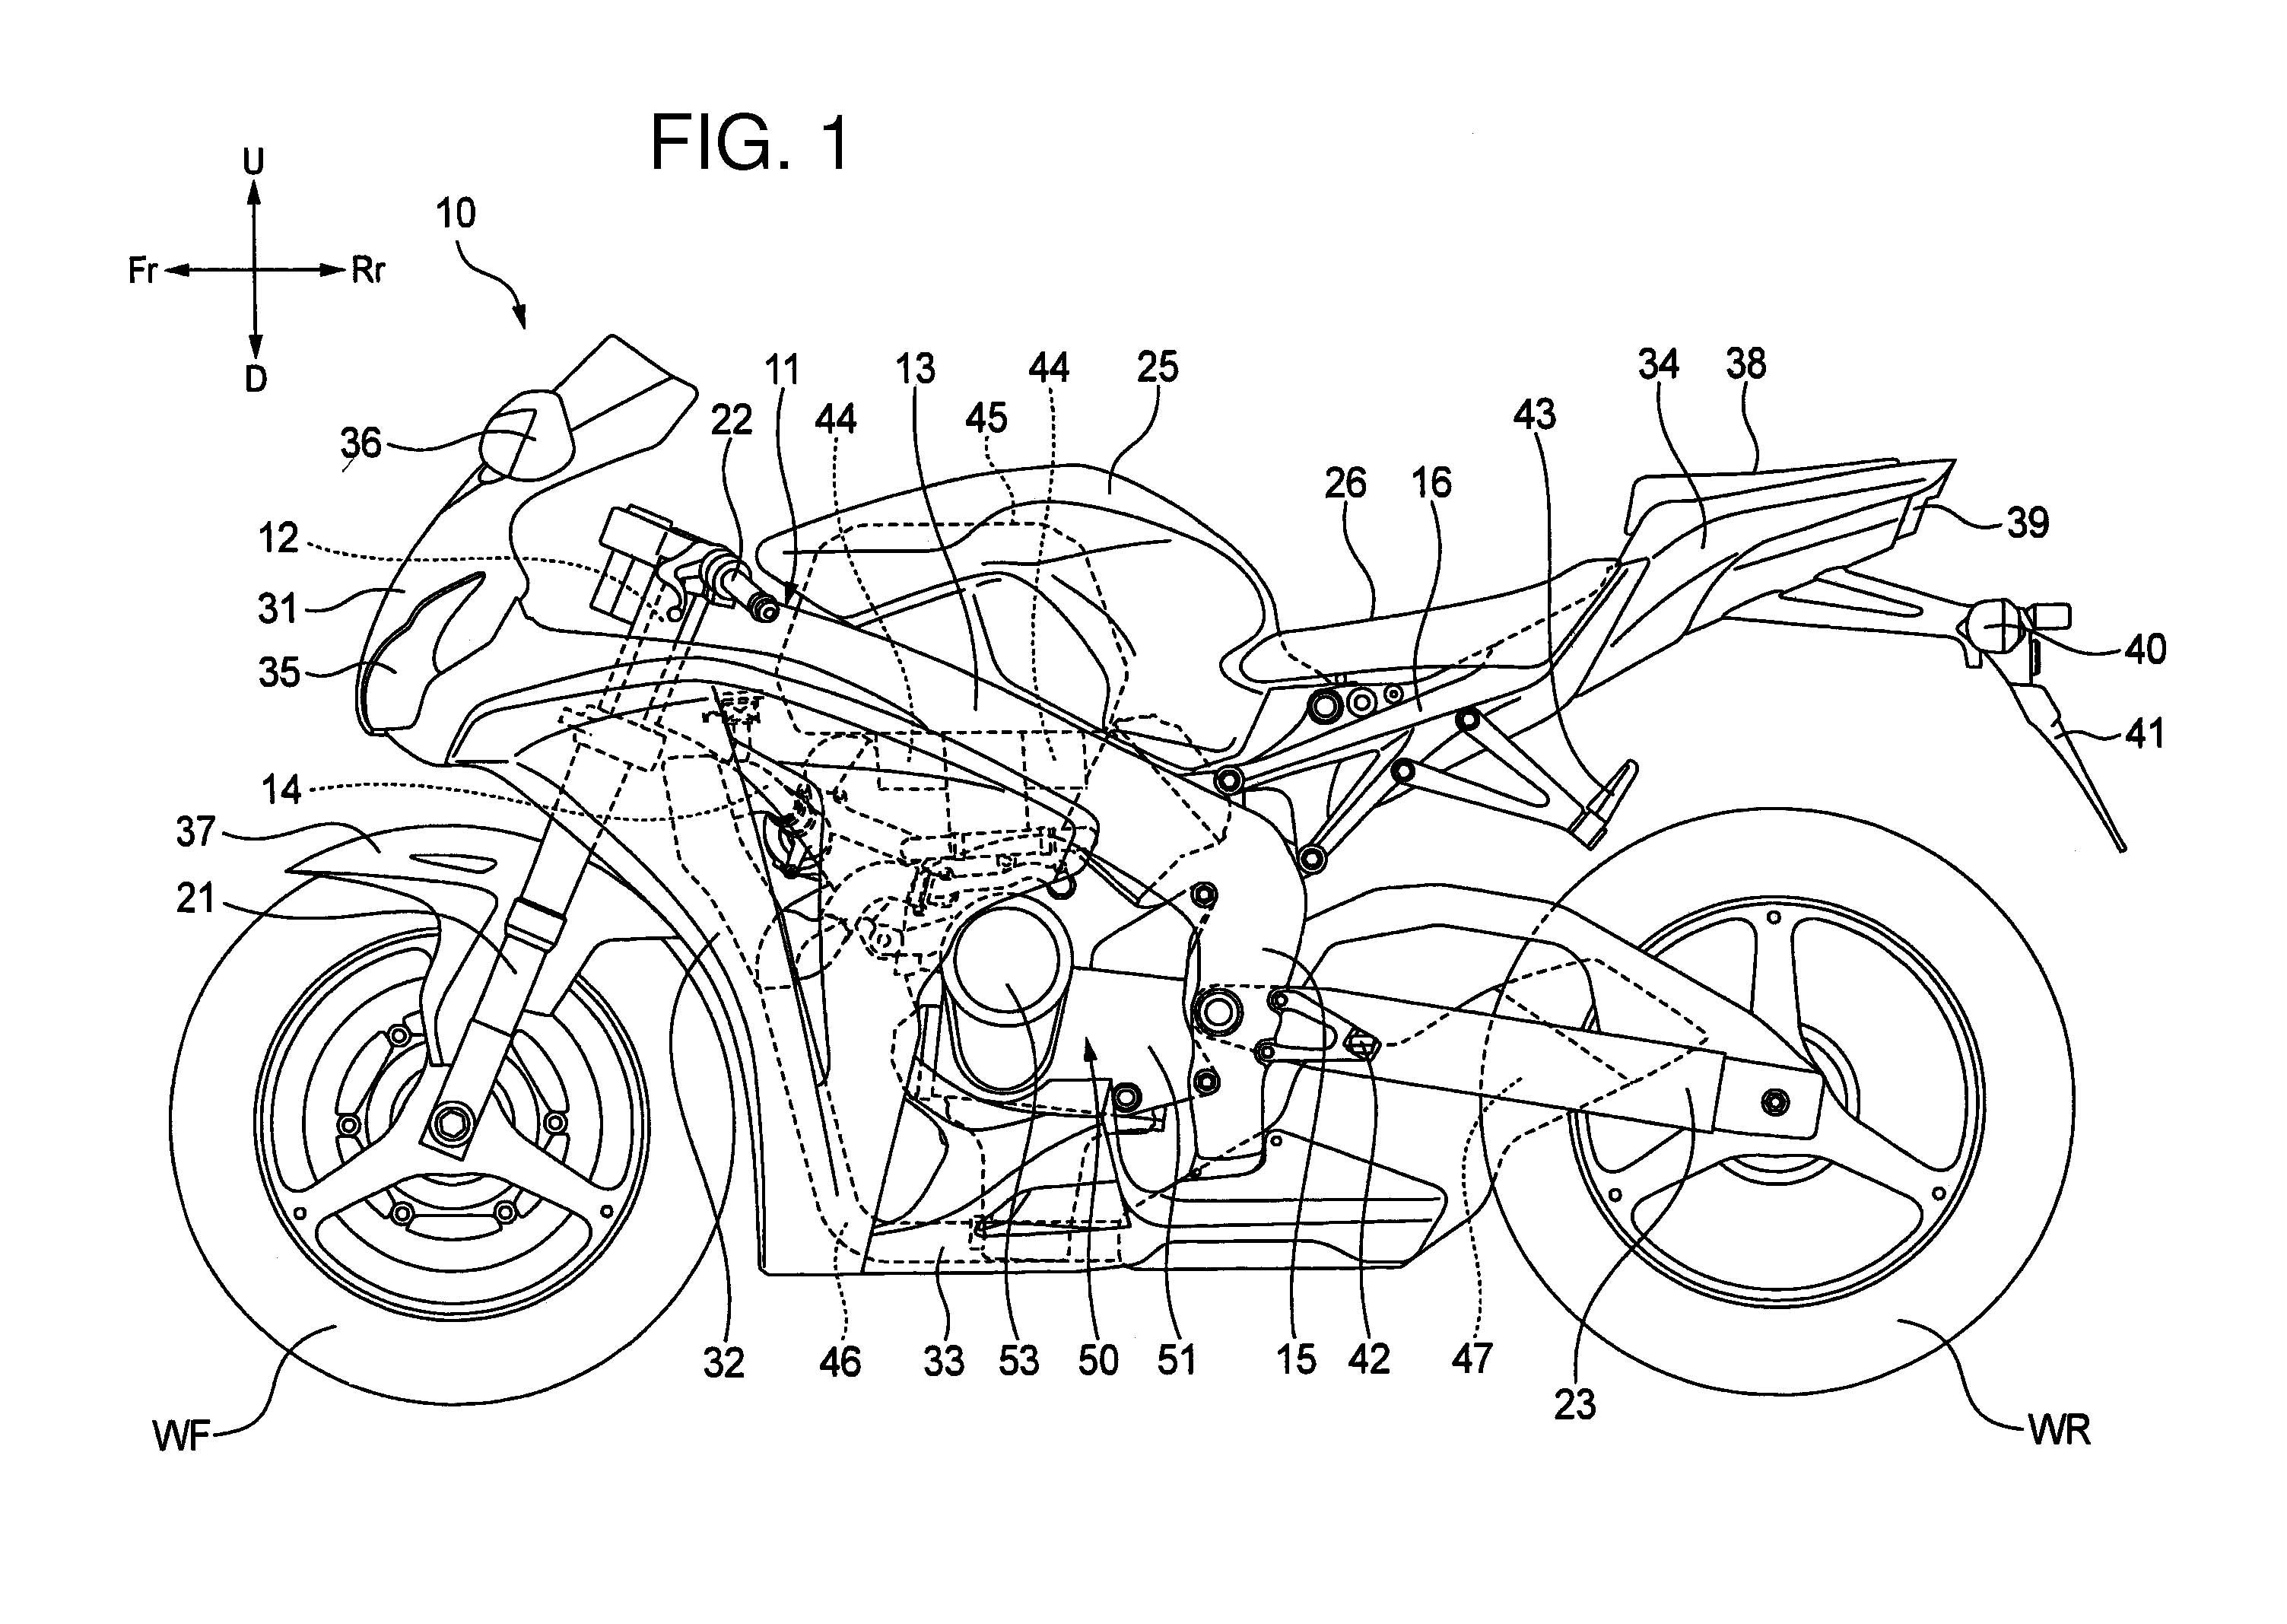 Interesting Honda Patent Drawings